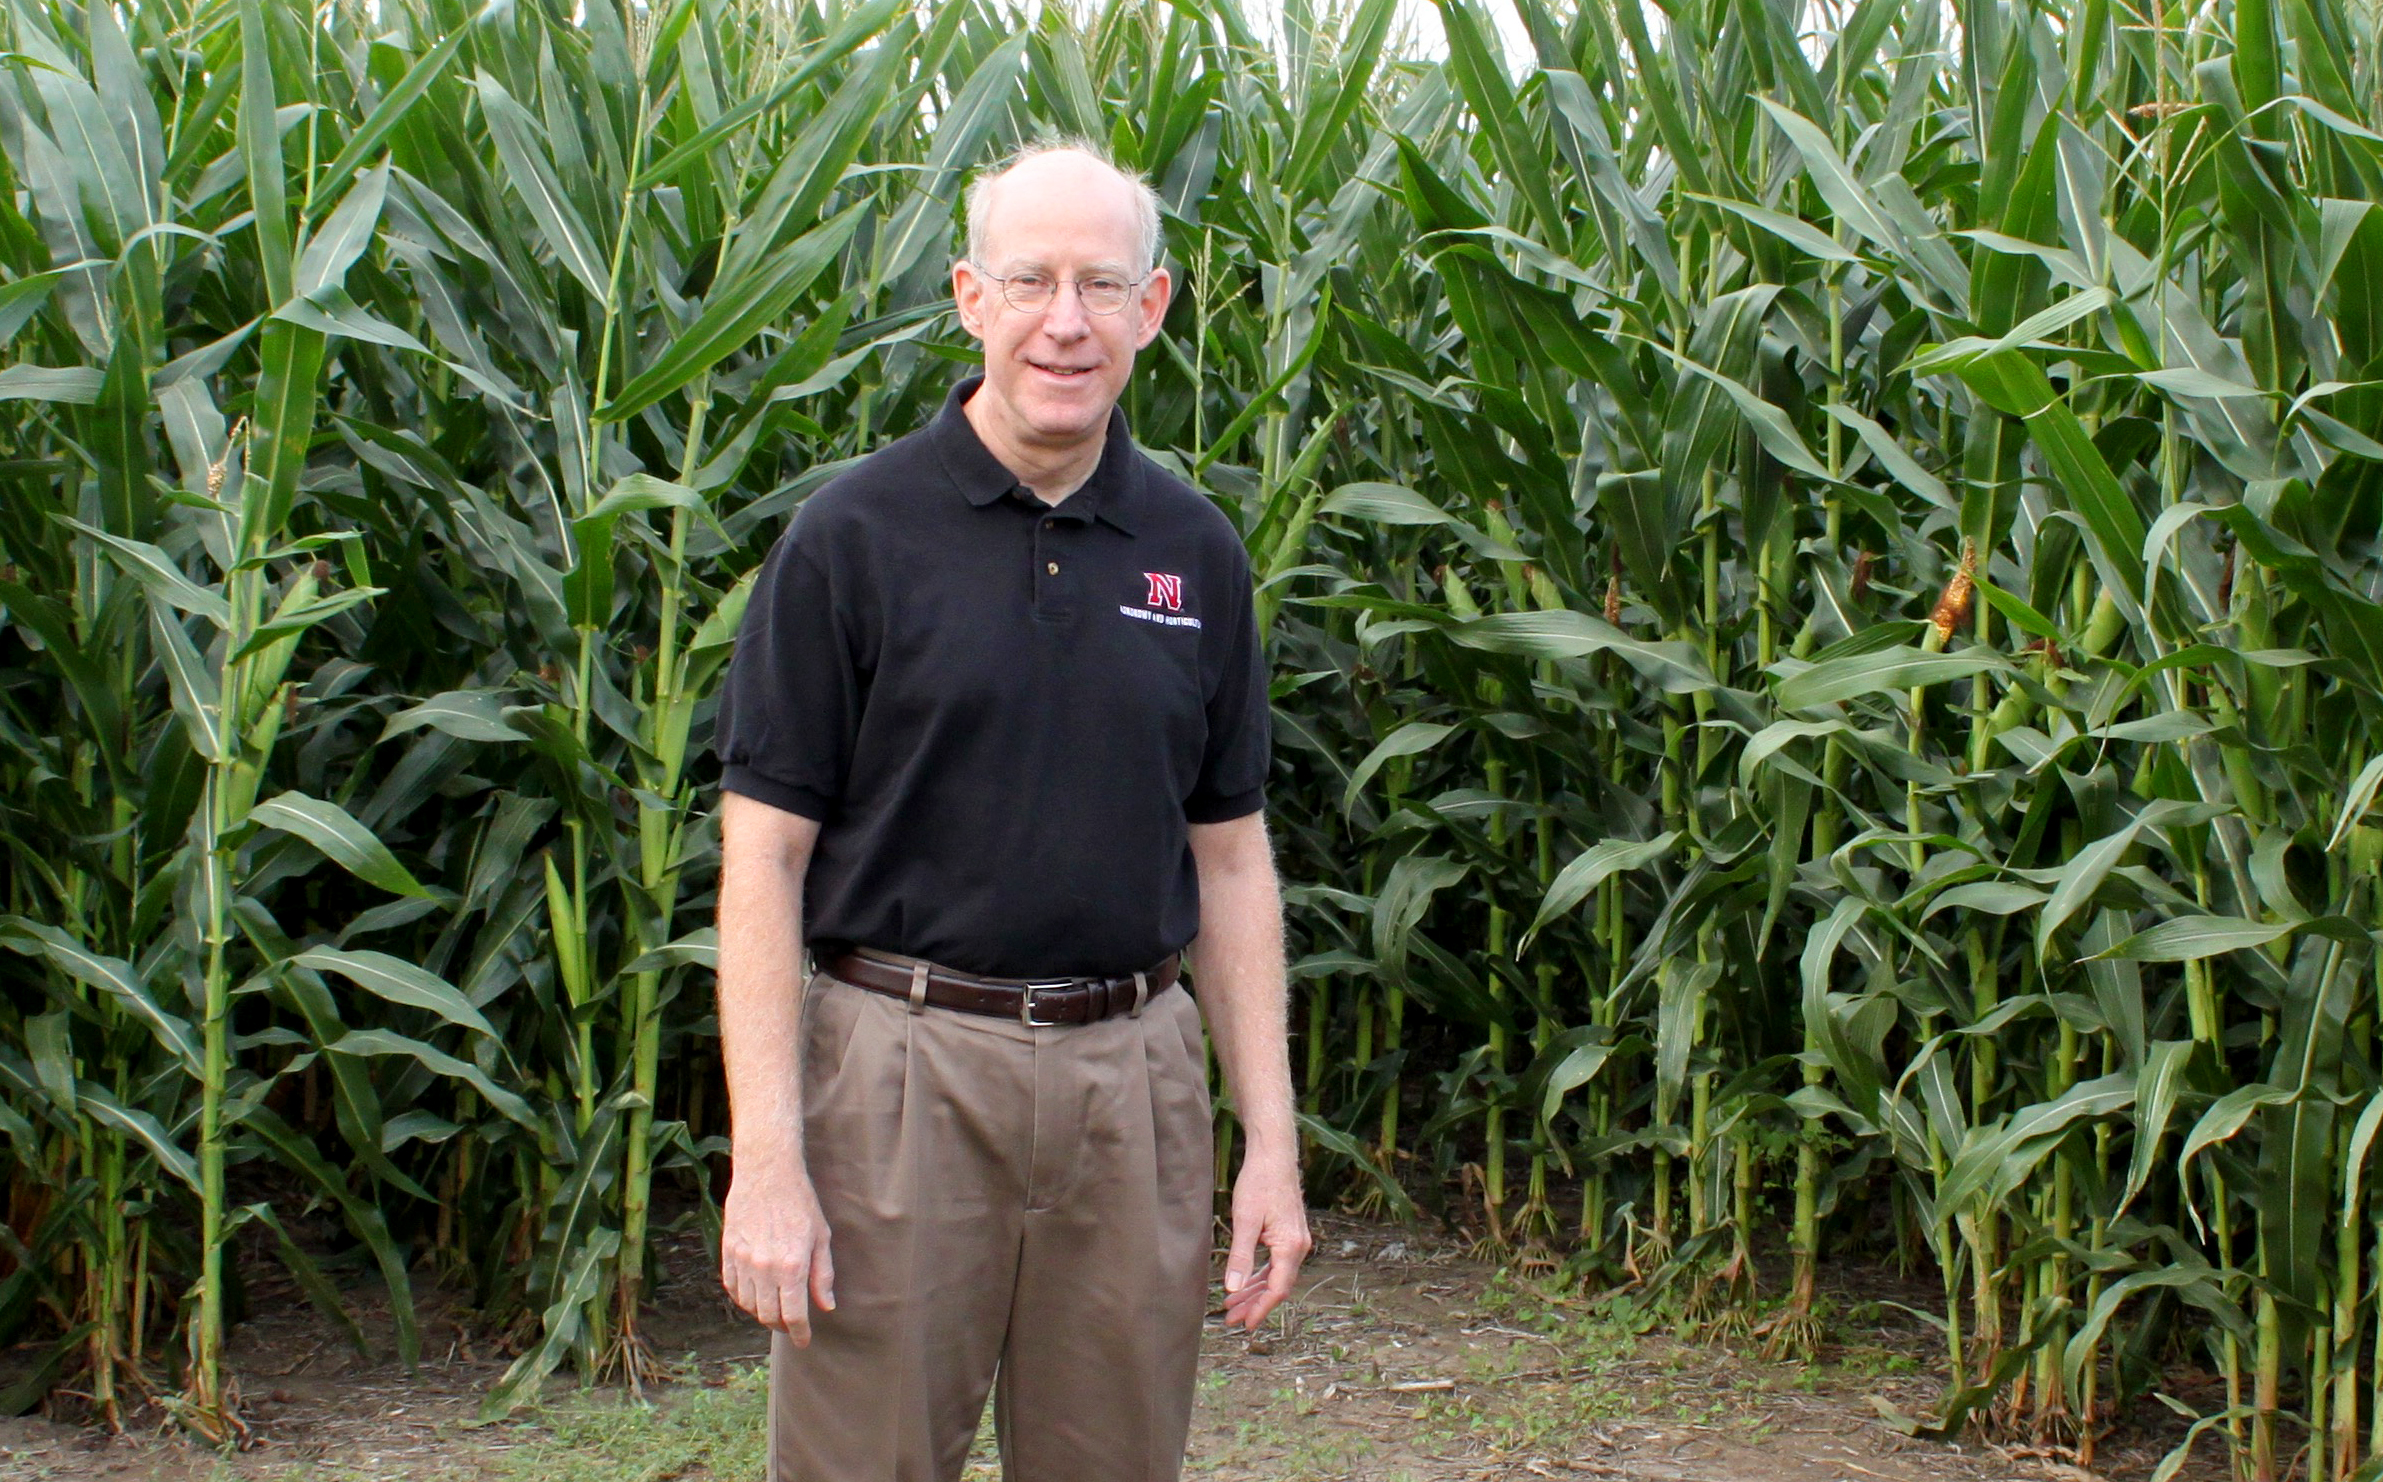 Richard Ferguson, University of Nebraska-Lincoln agronomy and horticulture professor and interim department head, received the Fertilizer Industry Roundtable Recognition Award: Innovative Technologies Advancing the Fertilizer Industry.